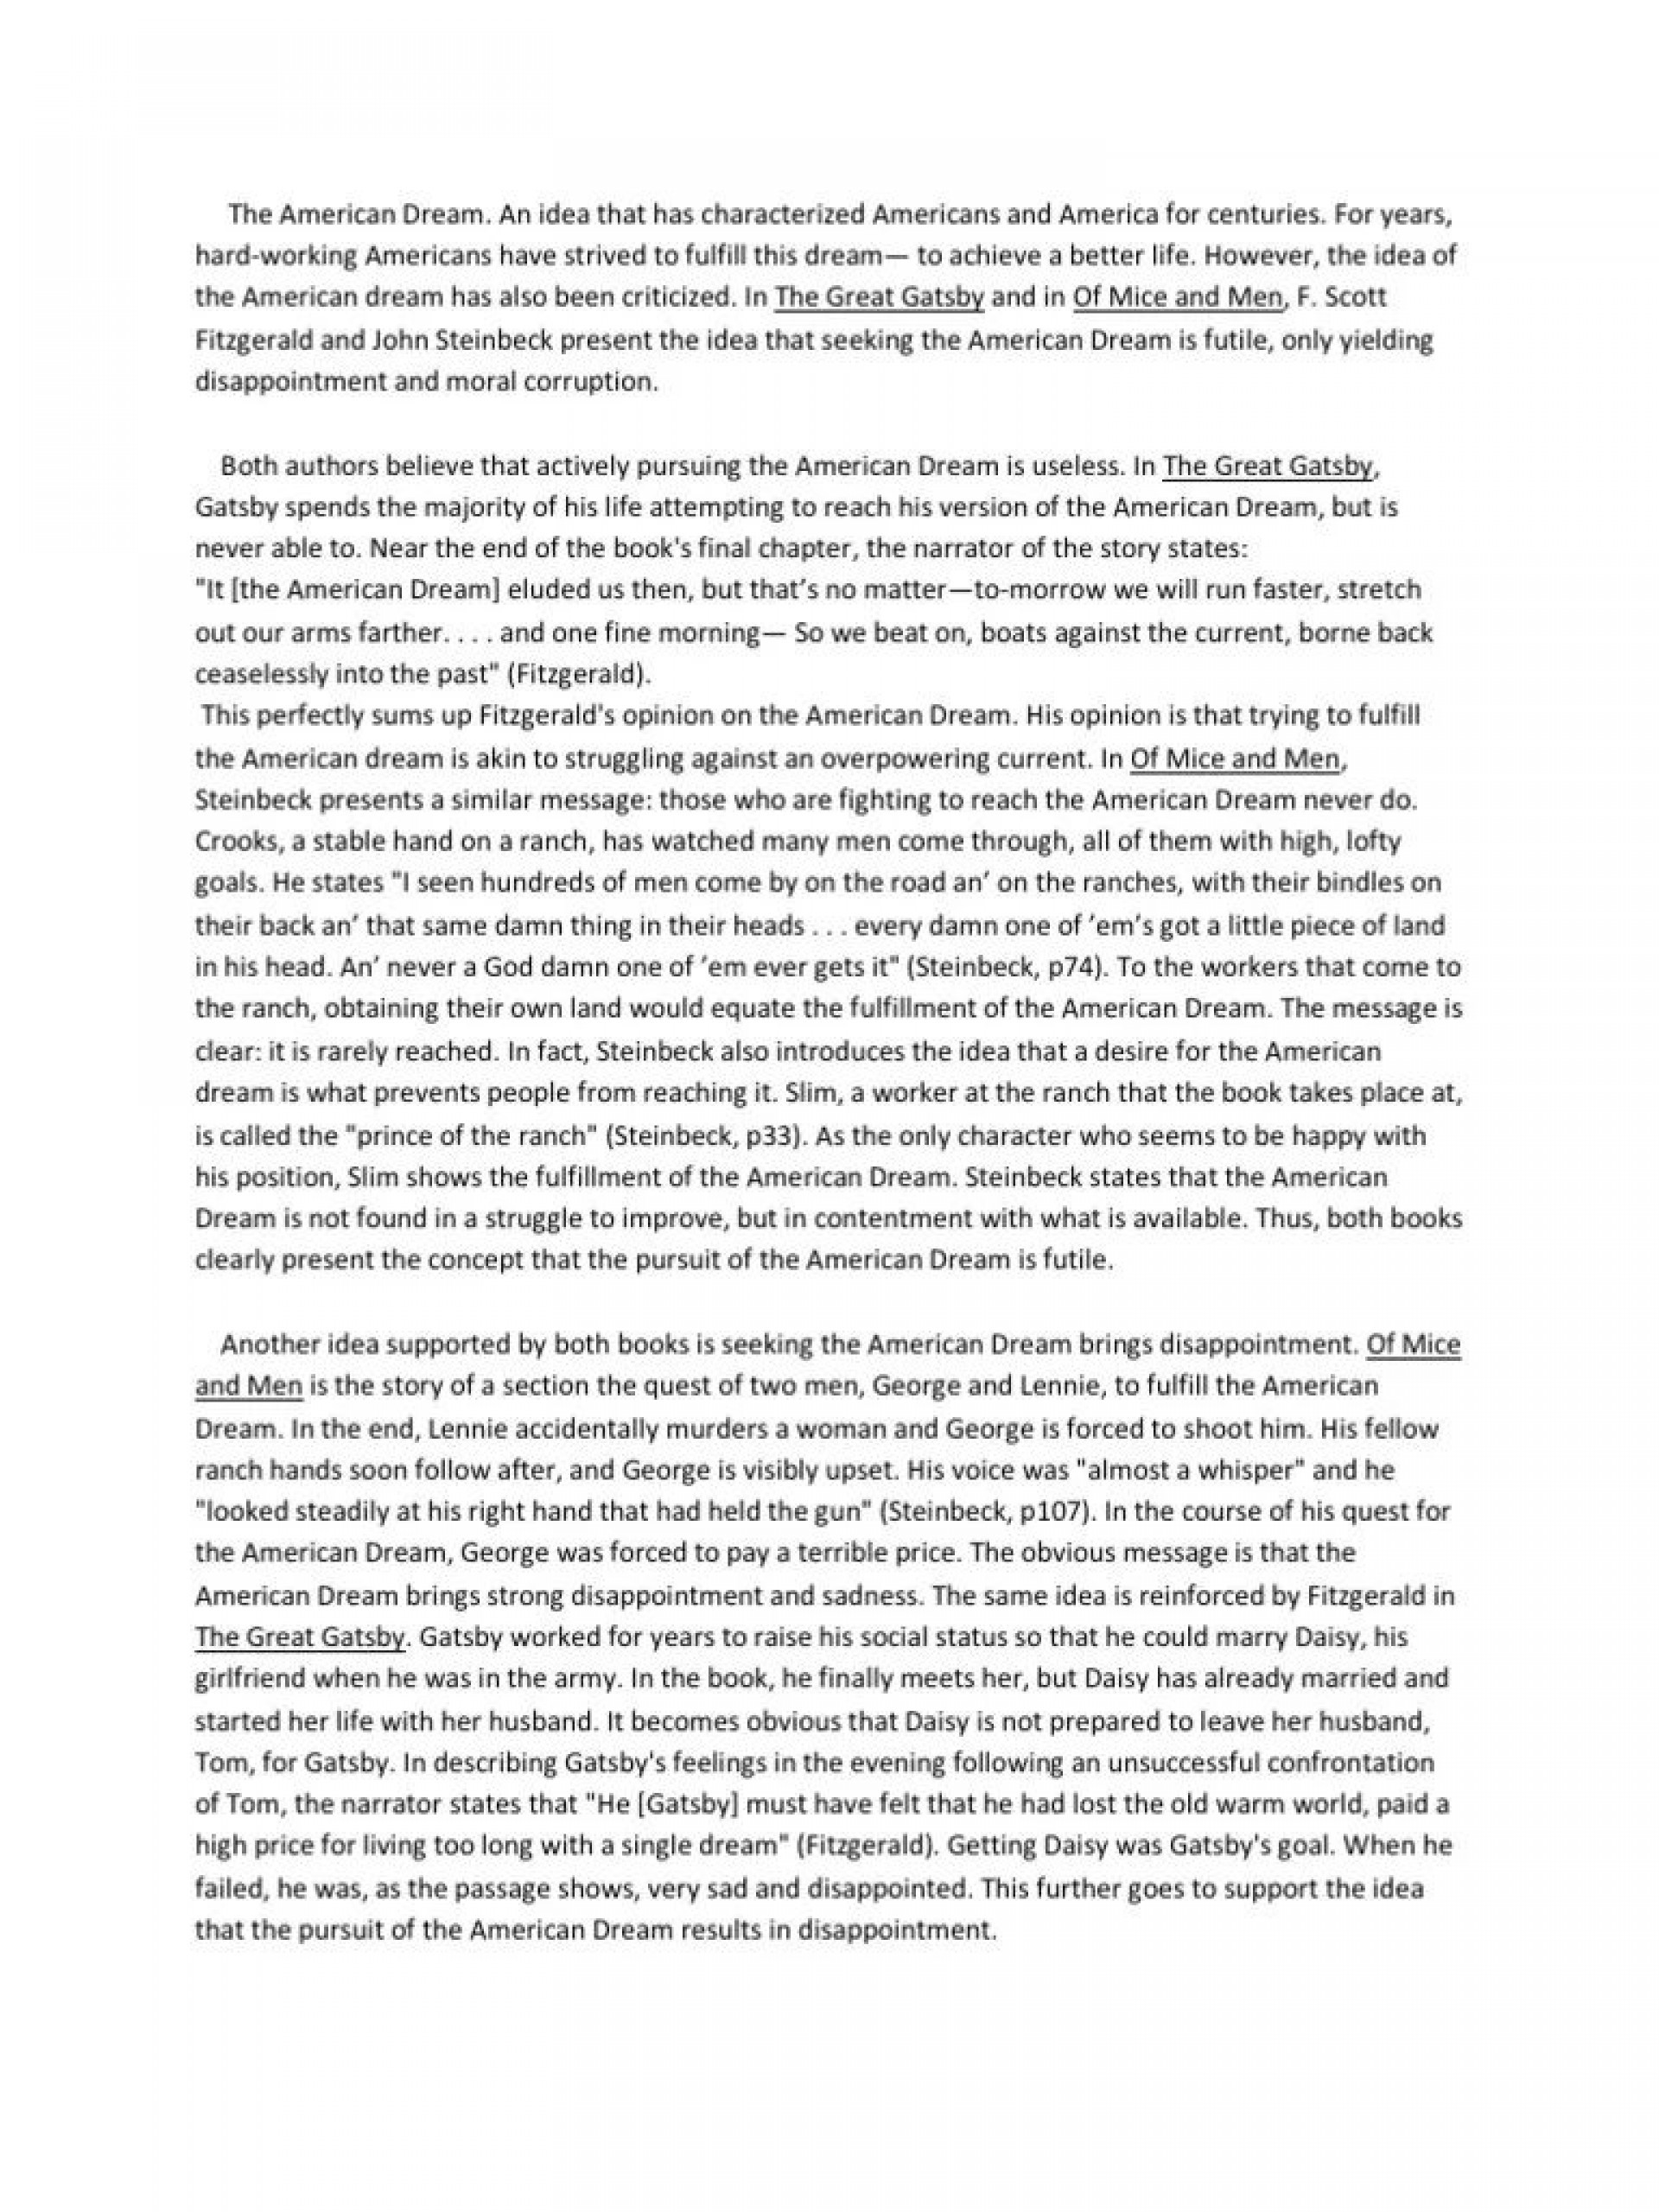 006 Frightening Of Mice And Men Essay Sample  Prompt Topic1920